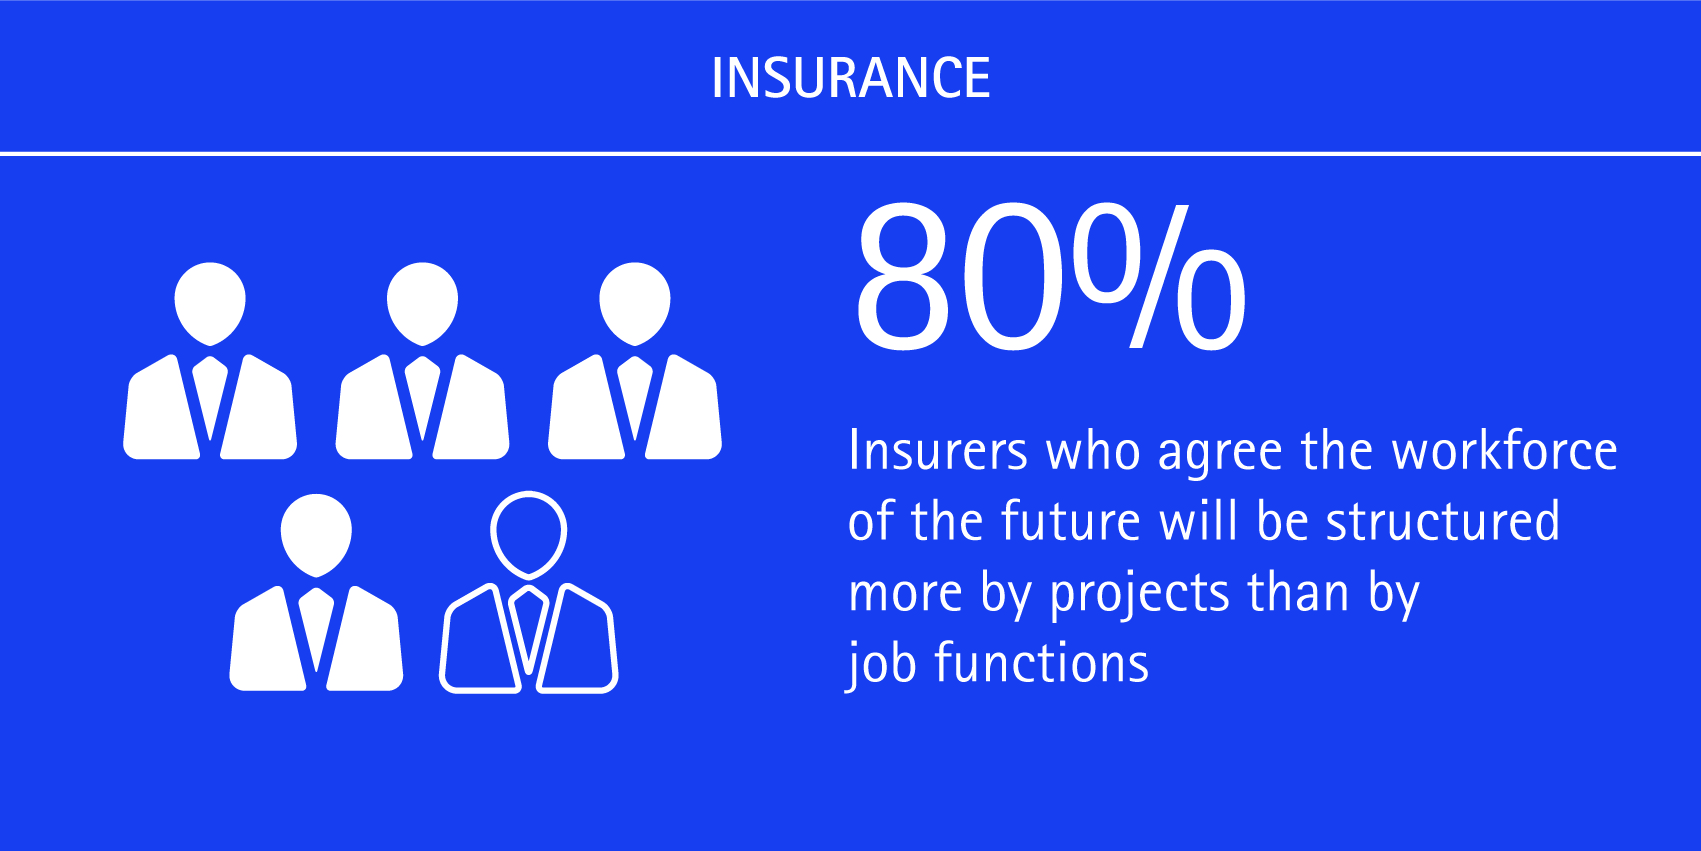 80% of insurers agree the workforce of the future will be structured more by projects than by job functions